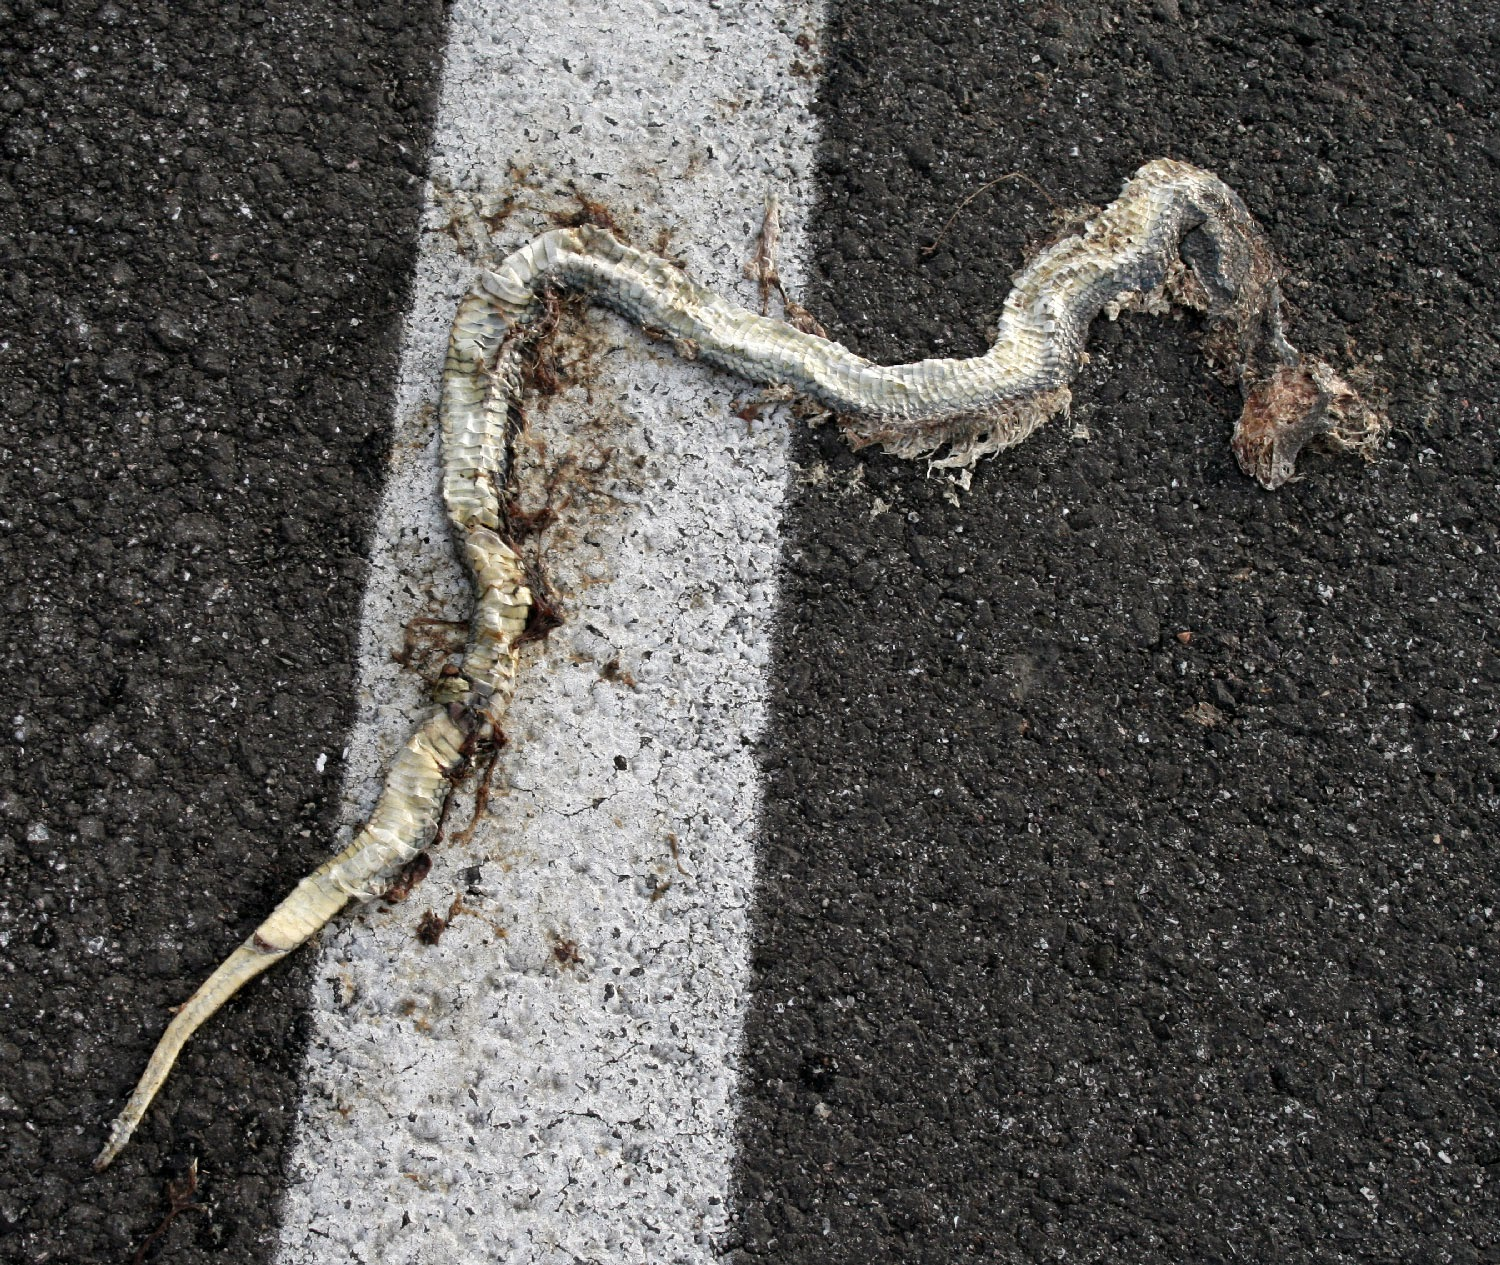 Squished snake on the road